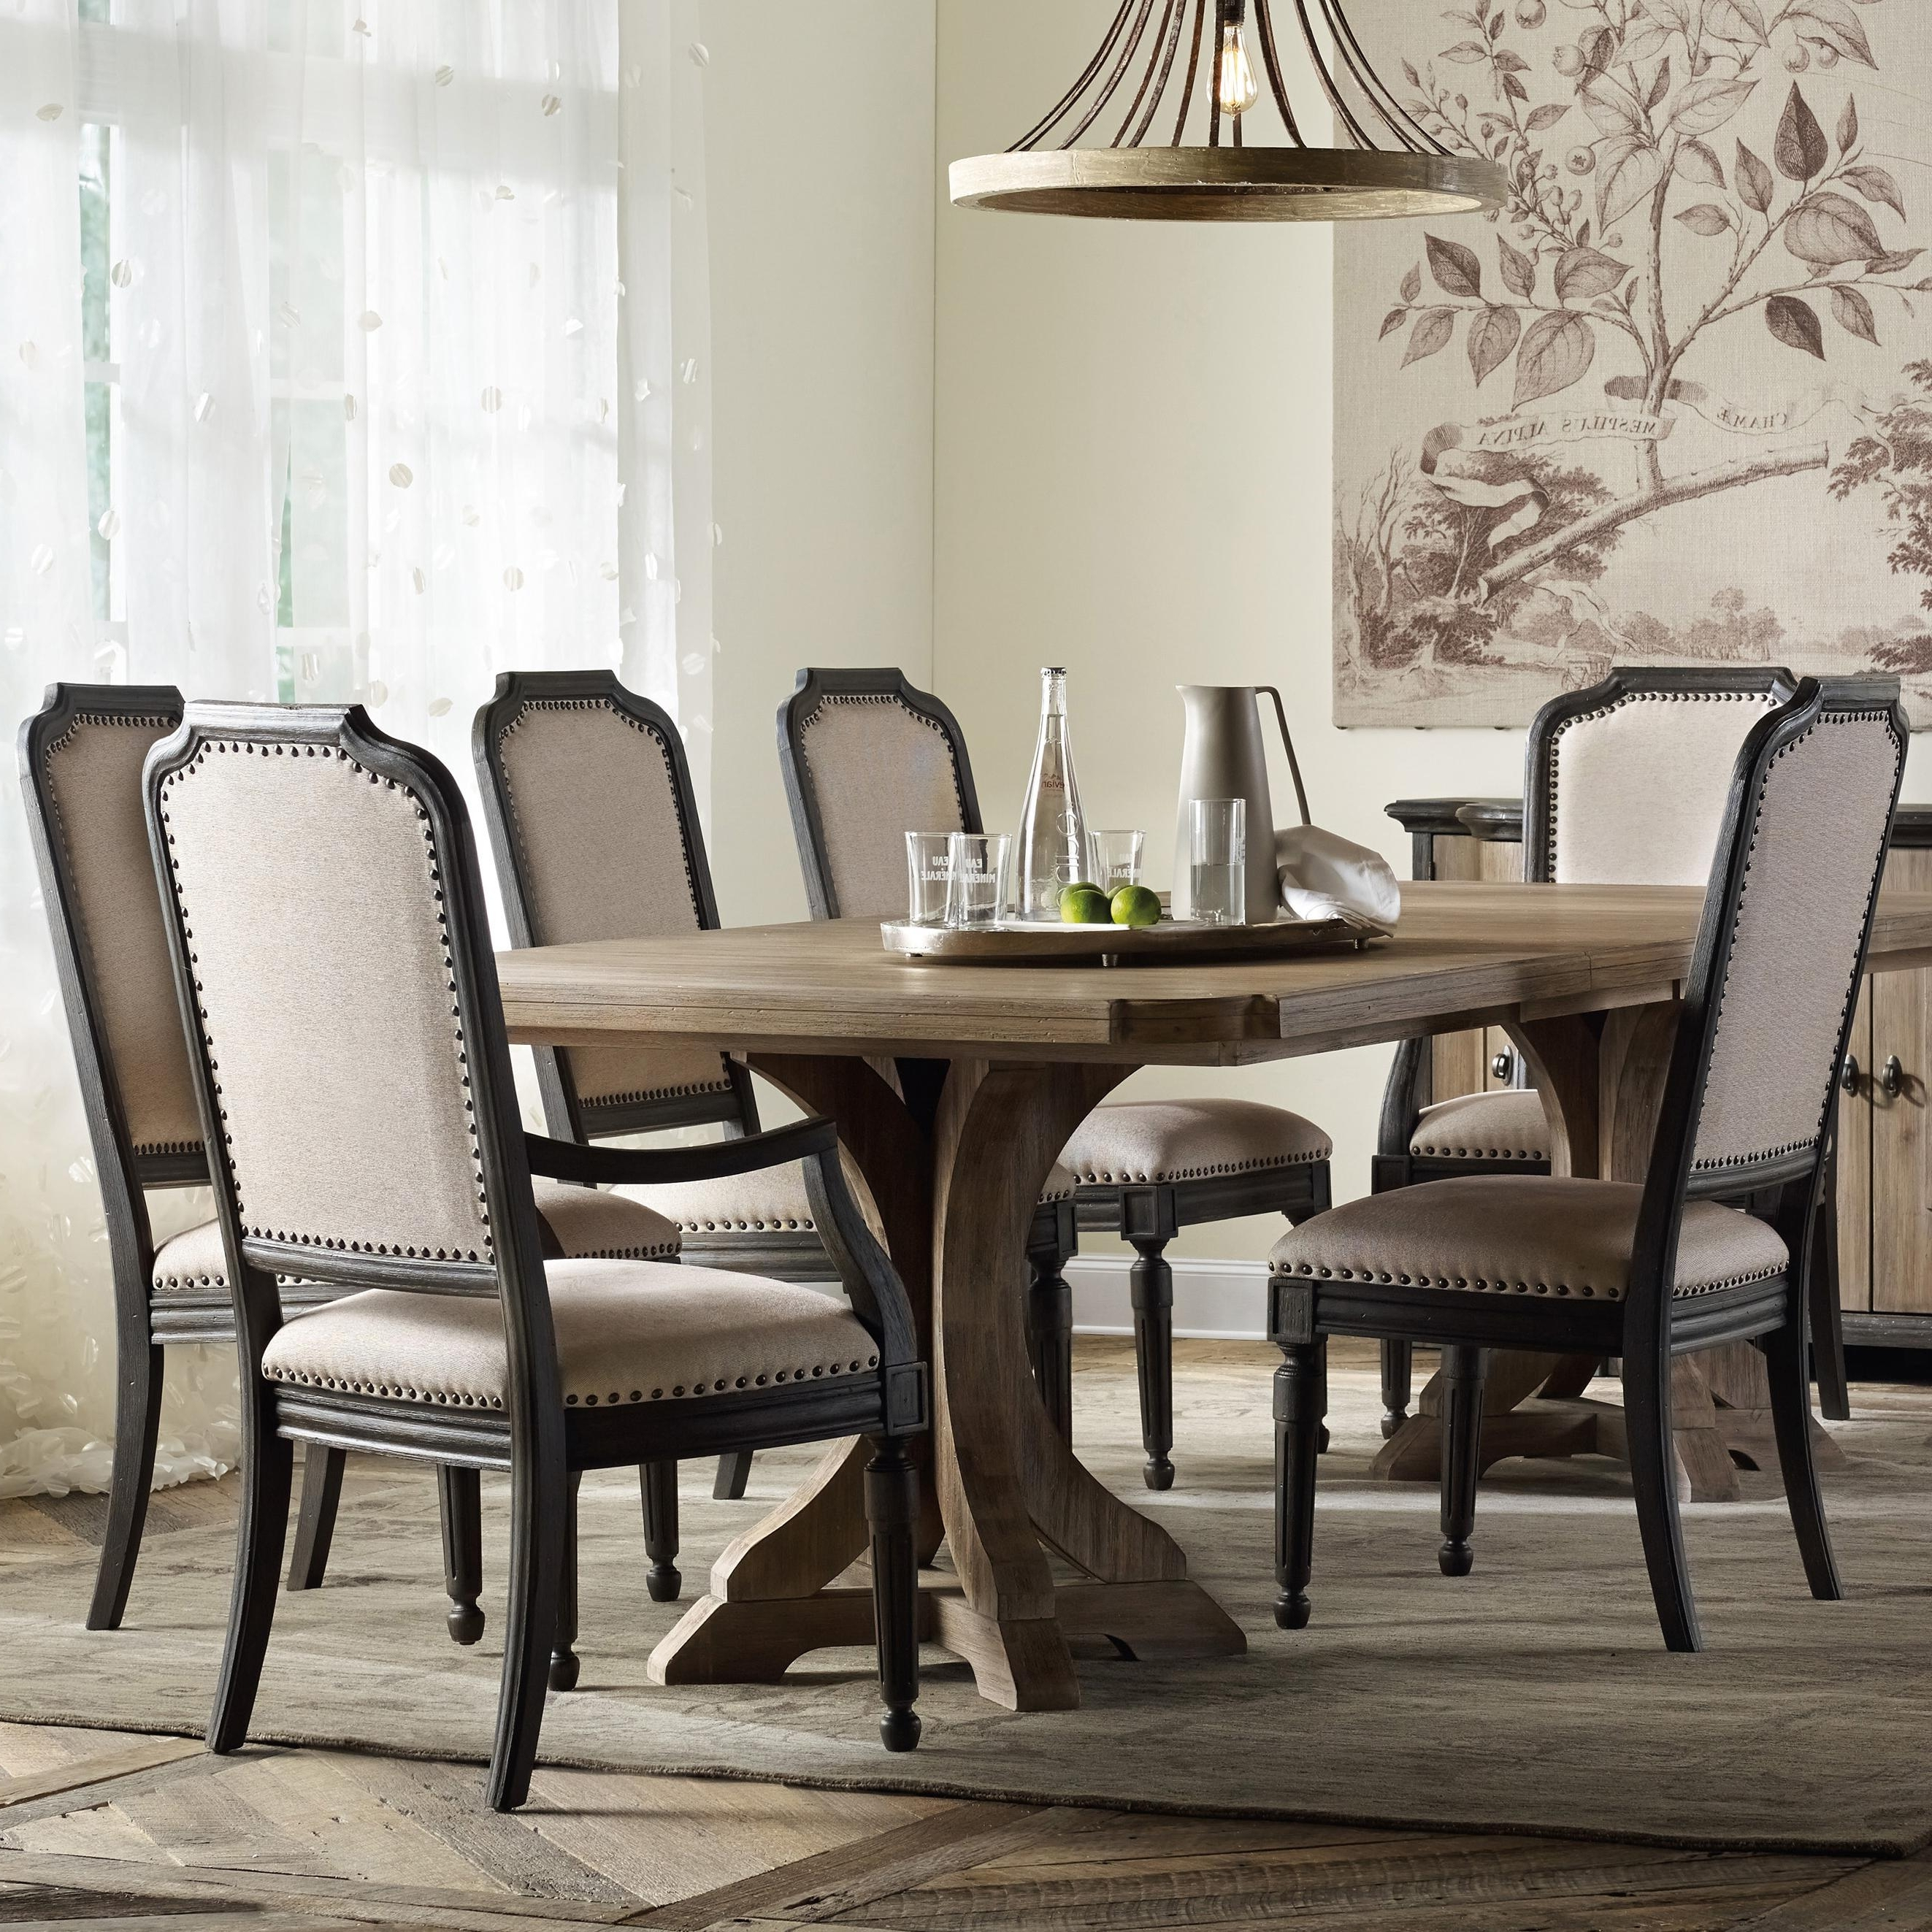 Hamilton Dining Tables With Regard To Current Hamilton Home Corsica Rectangle Pedestal Dining Table Set With (Gallery 16 of 25)